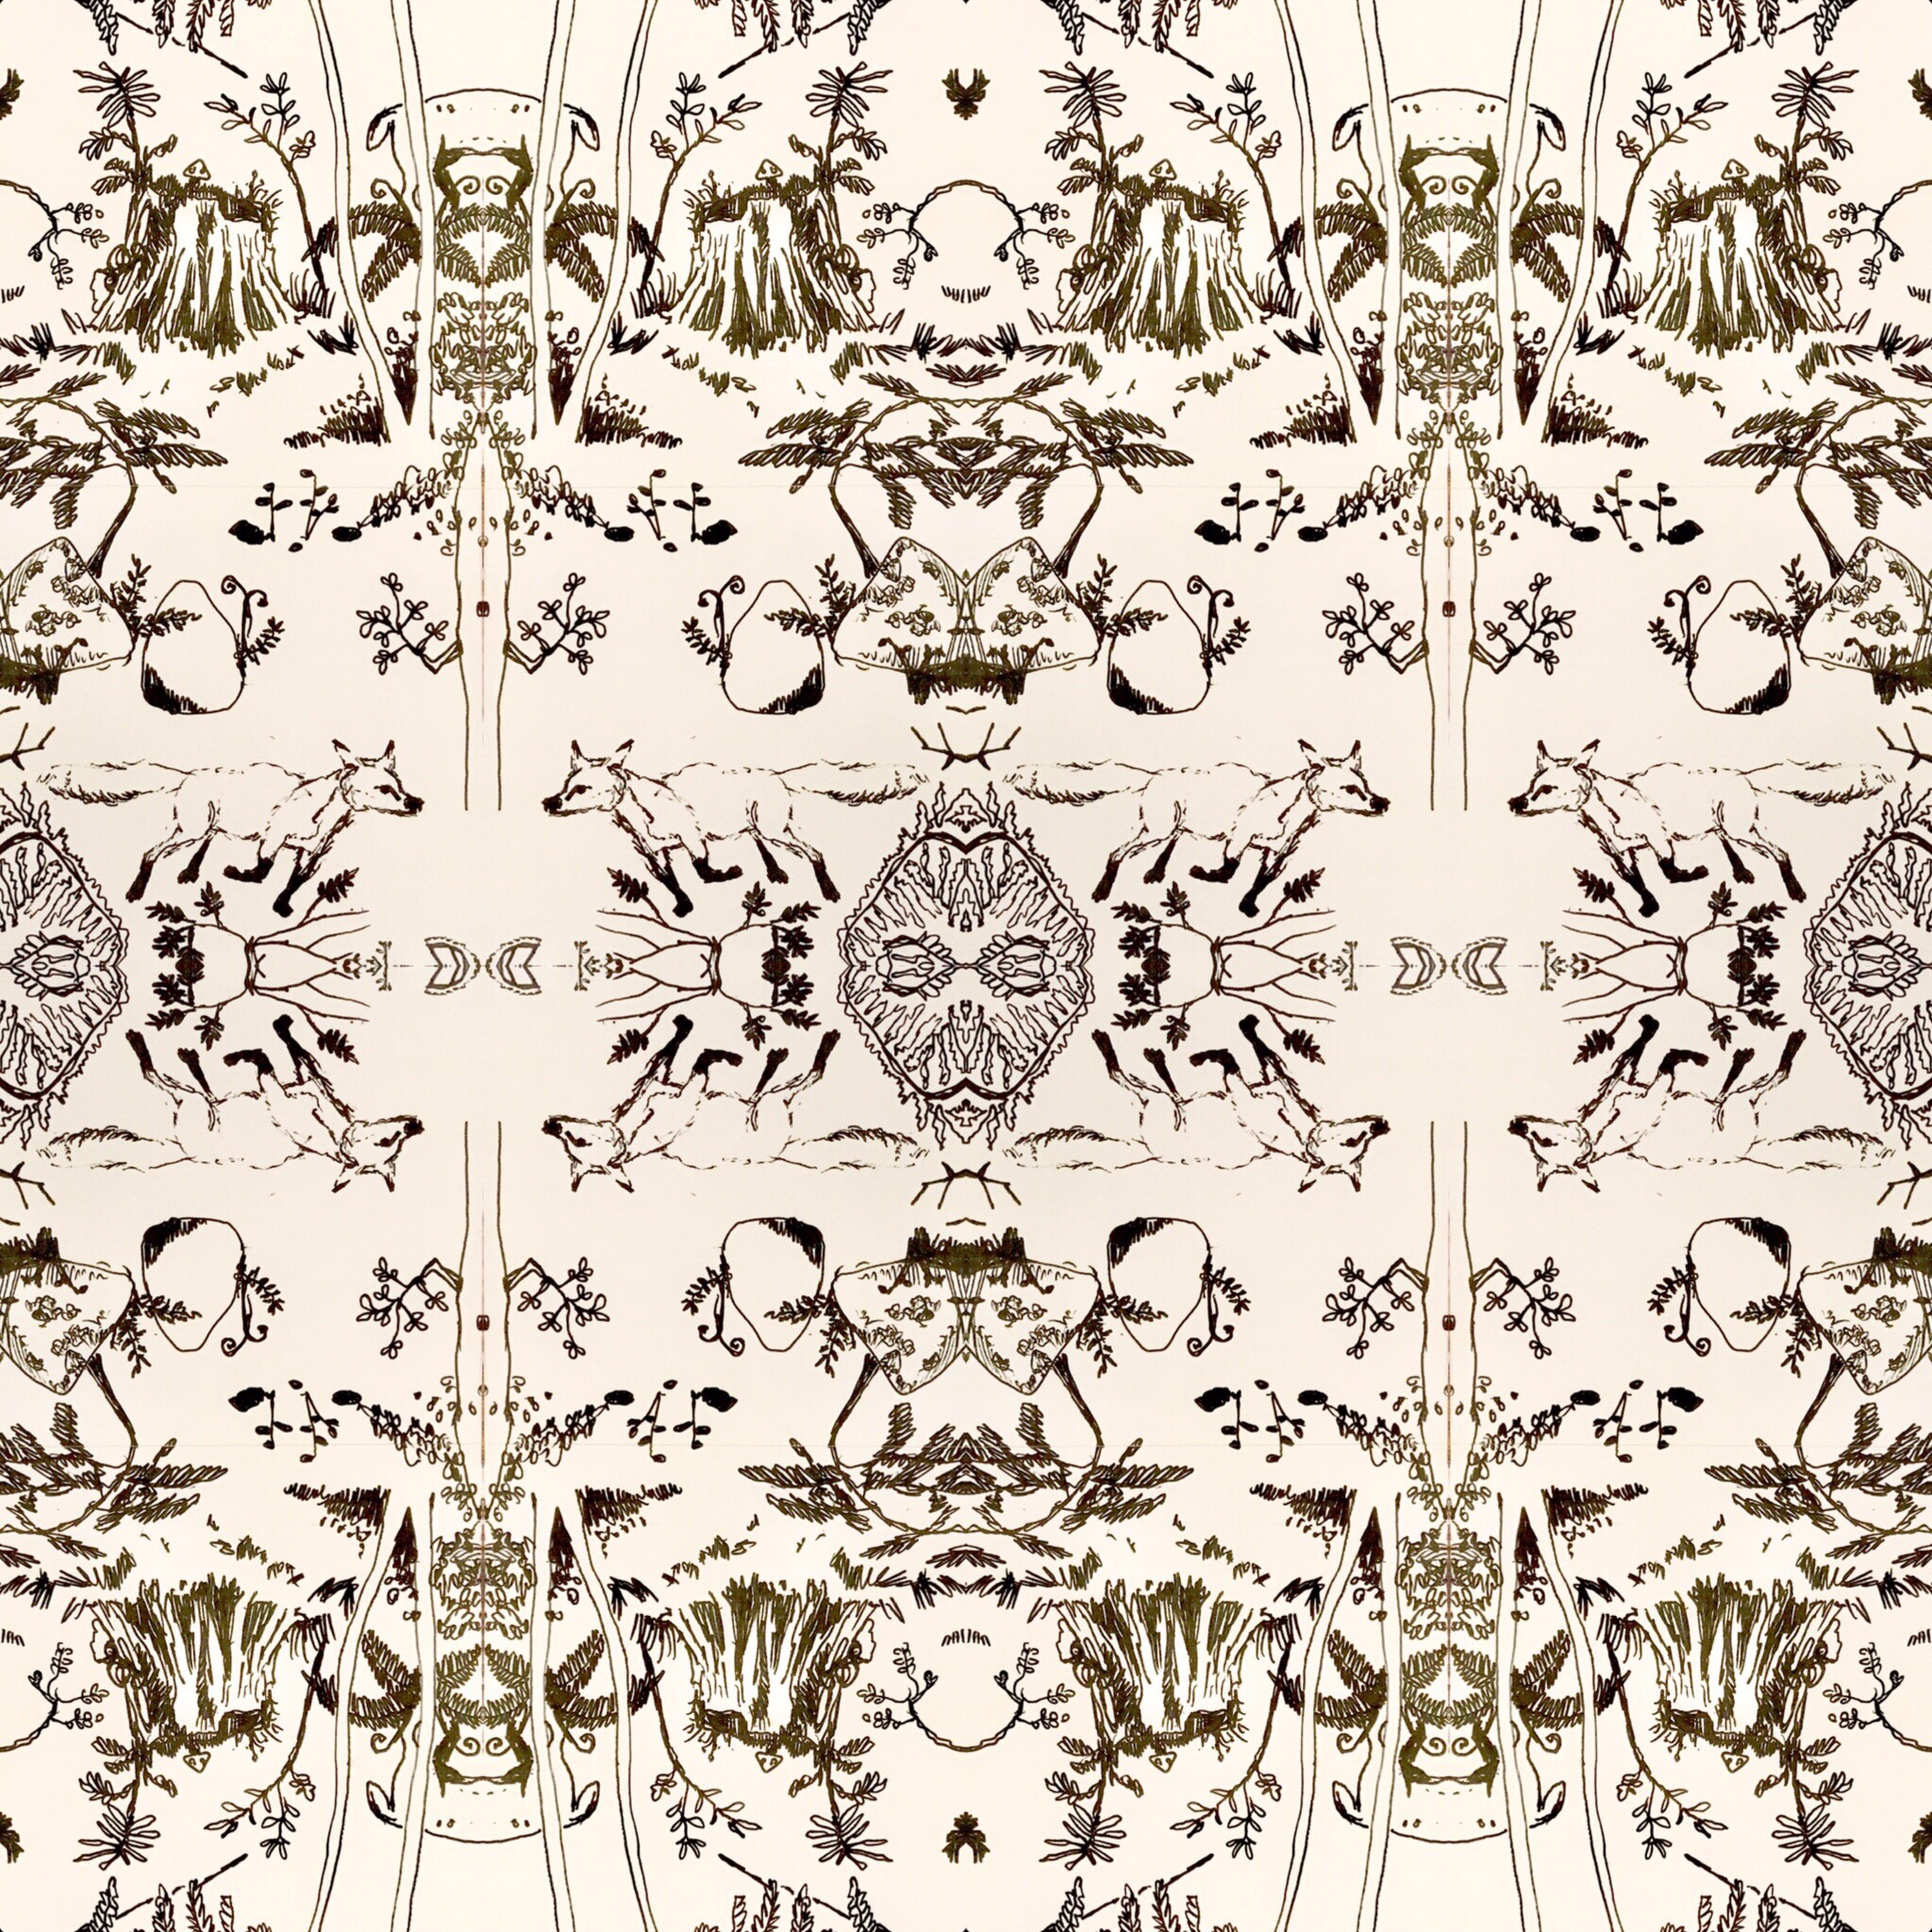 Textile pattern making  fox running forest nature  natural wild land landscape contemporary drawing design luxe dwell home furnishing interior design